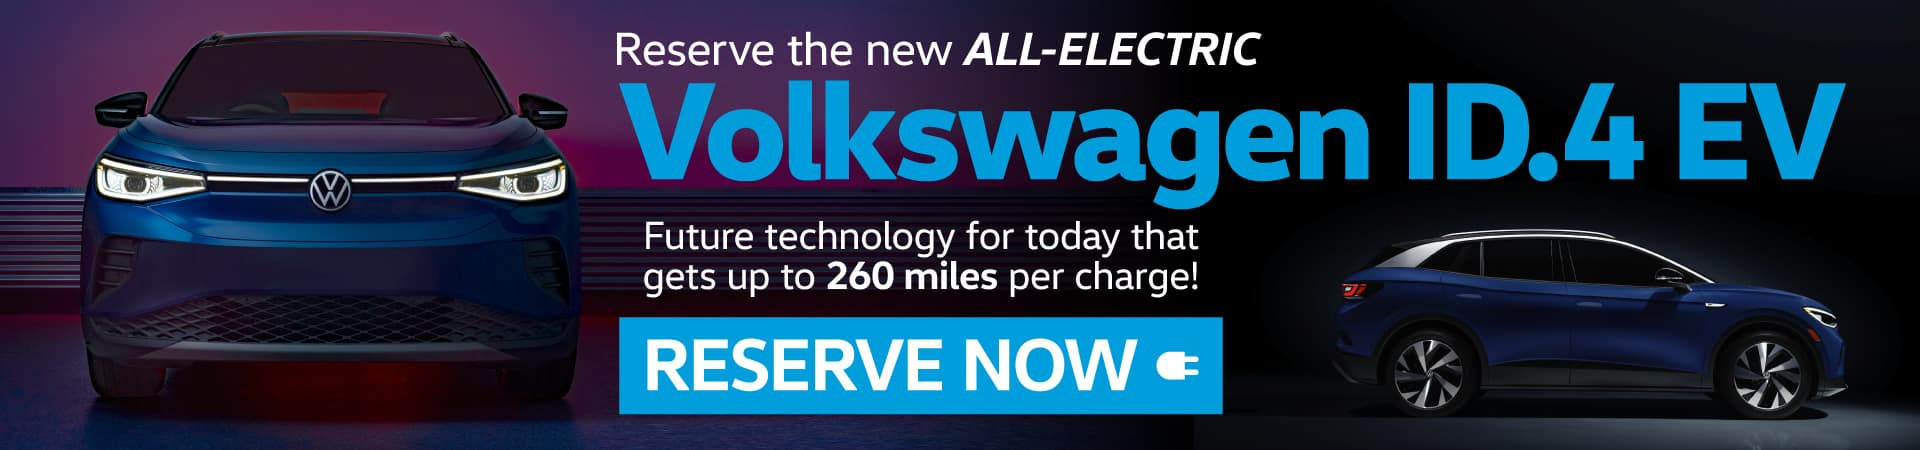 Reserve the new Volkswagen ID.4 EV Today